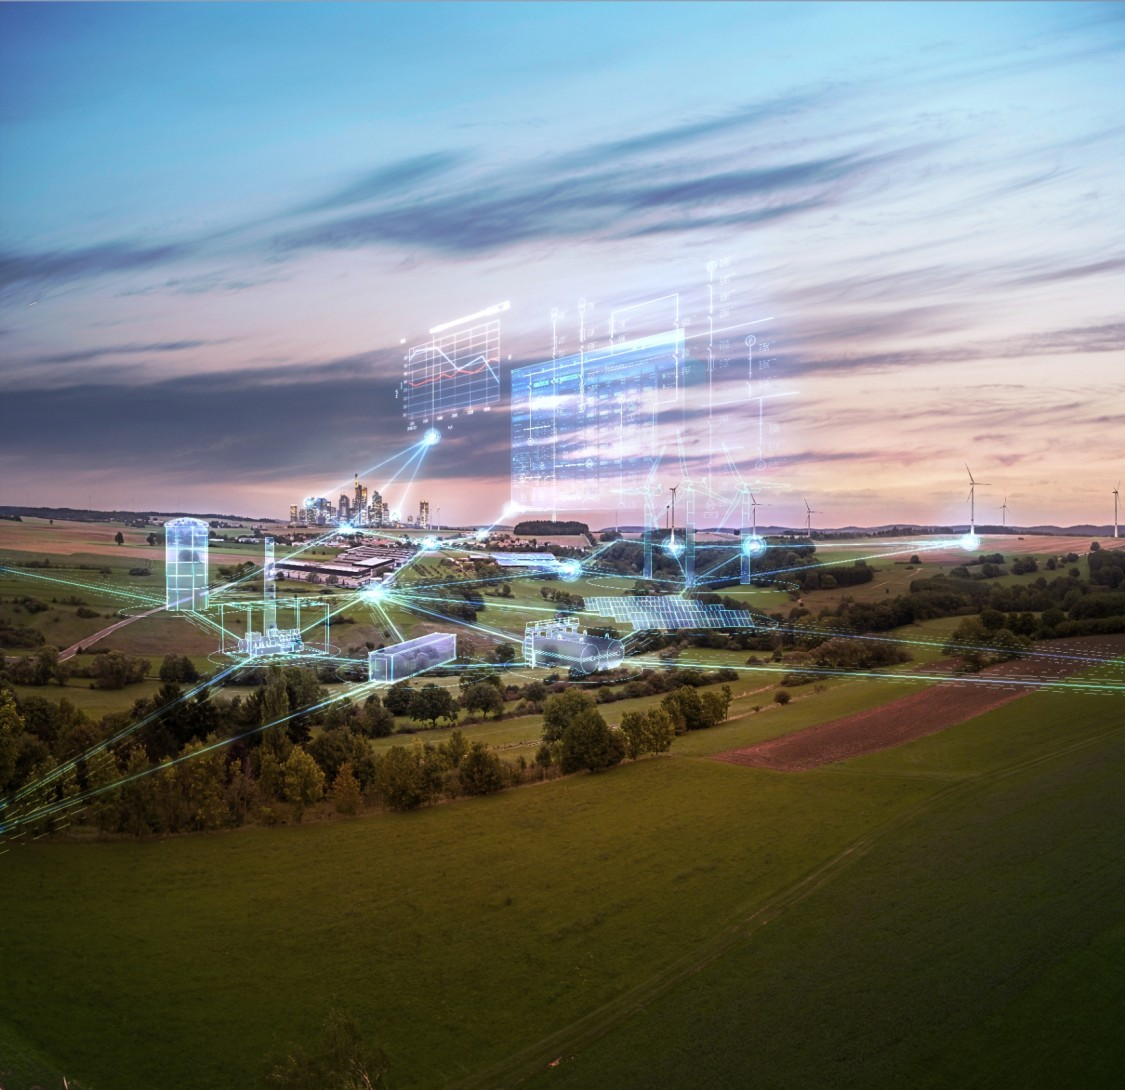 Distributed energy systems with technology from Siemens make the energy supply of a smart mixed-use campus more economical, resilient, and sustainable